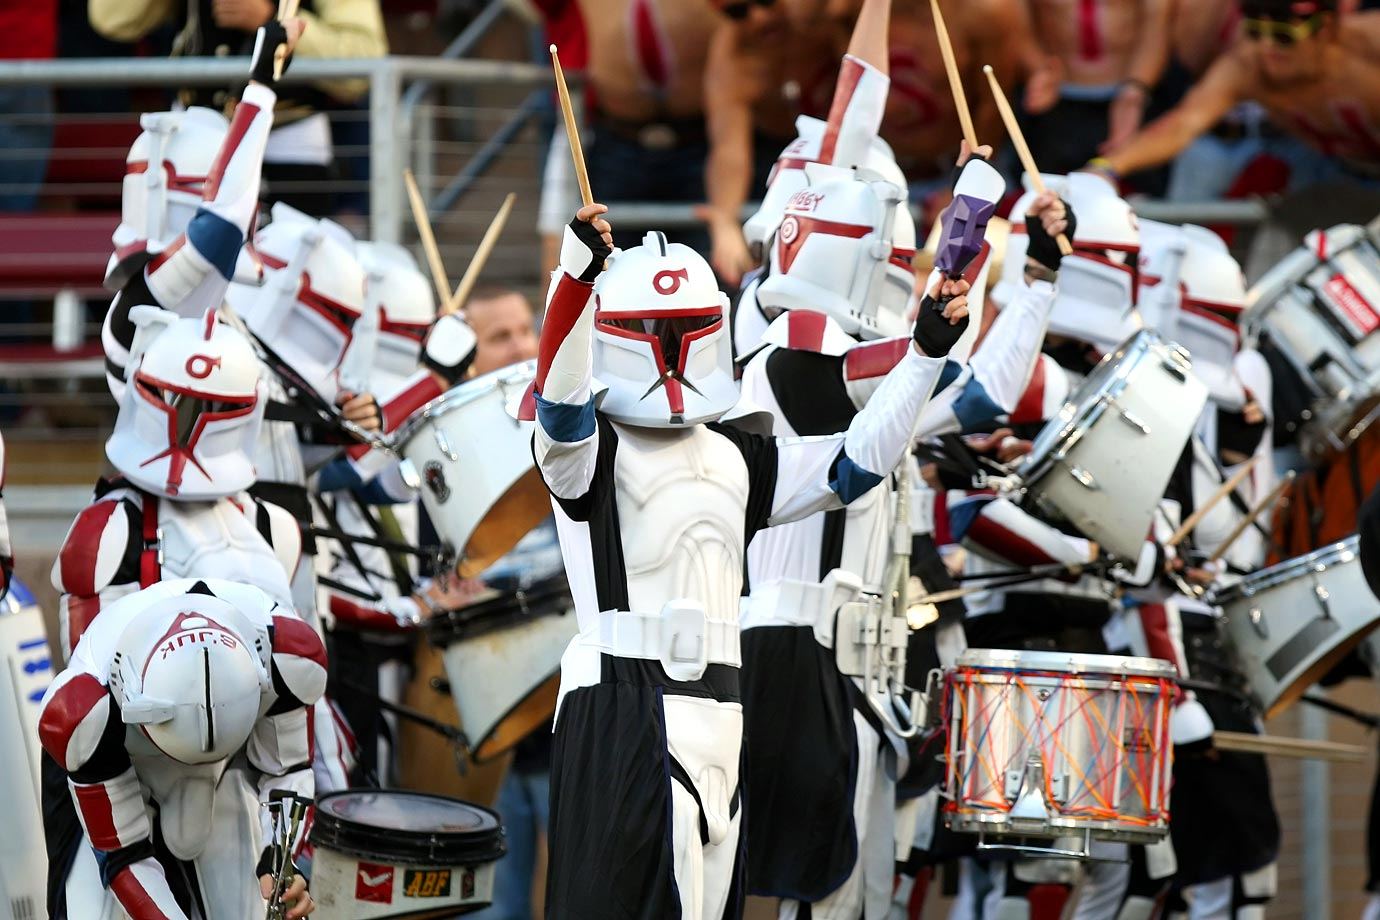 The Stanford marching band drummers dressed as clone troopers perform before a game against Cal on Nov. 21, 2009 at Stanford Stadium in Stanford, Calif.